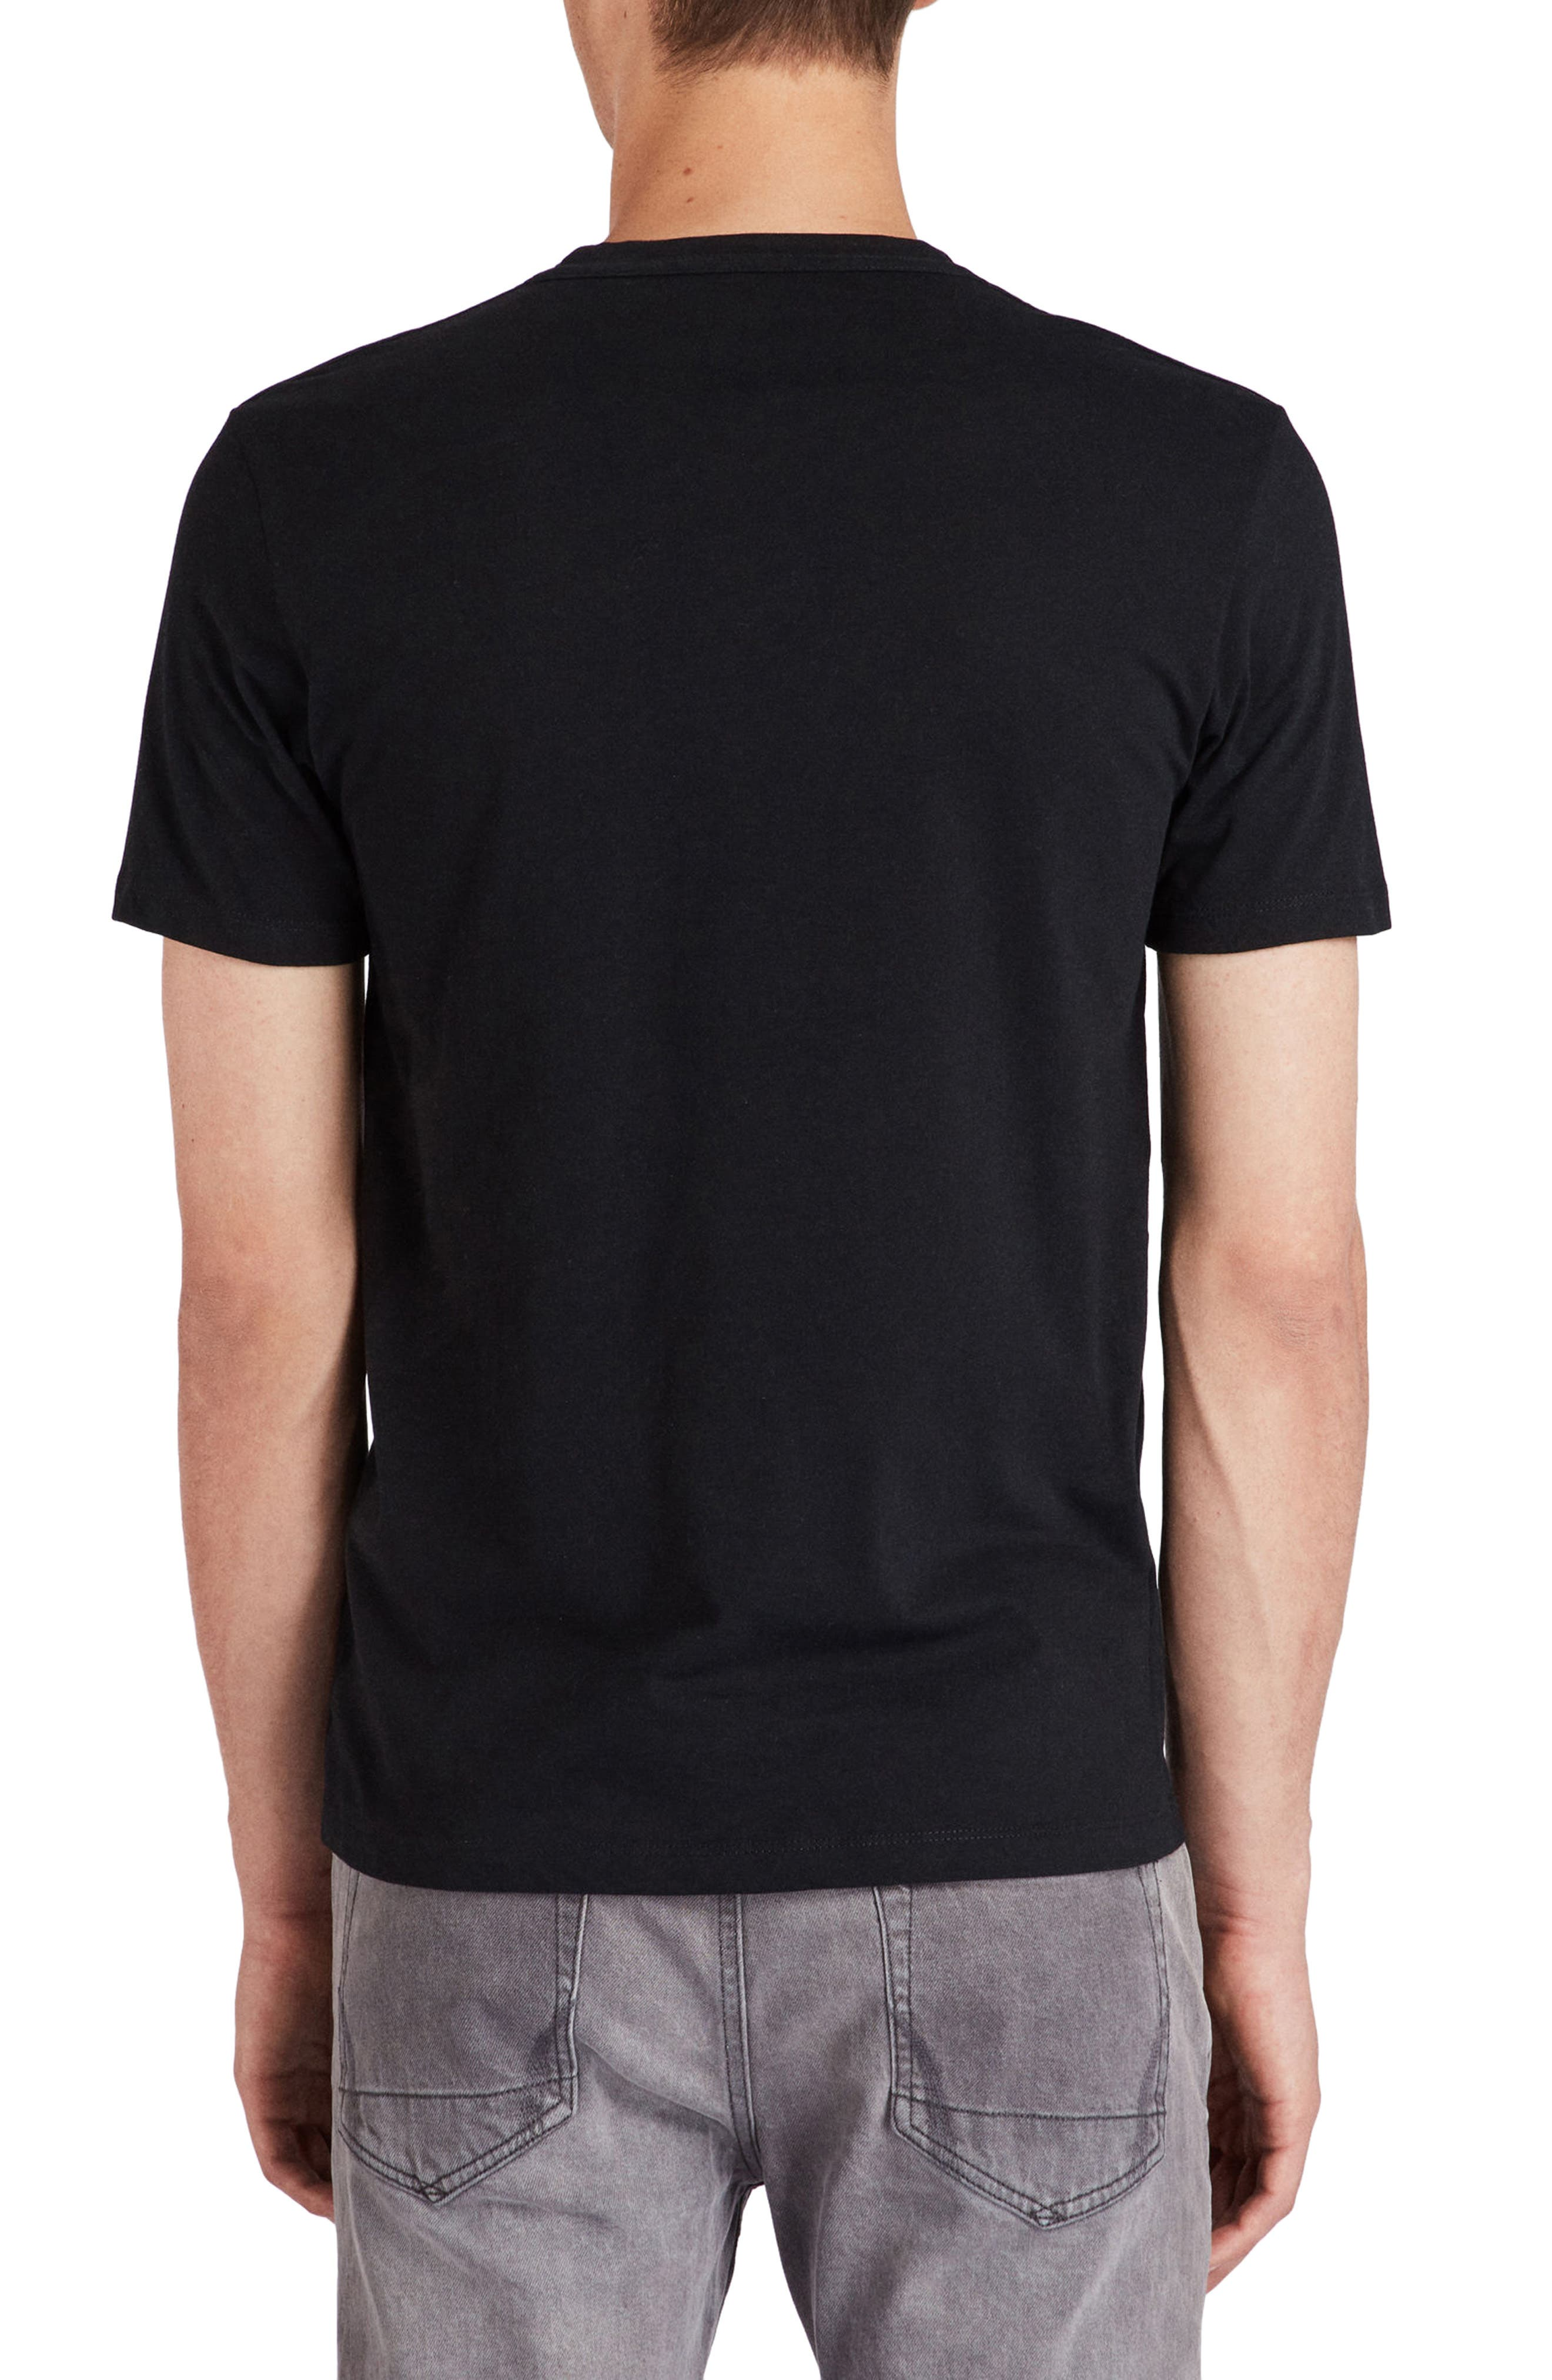 Brace Tonic Slim Fit Crewneck T-Shirt,                             Alternate thumbnail 2, color,                             003